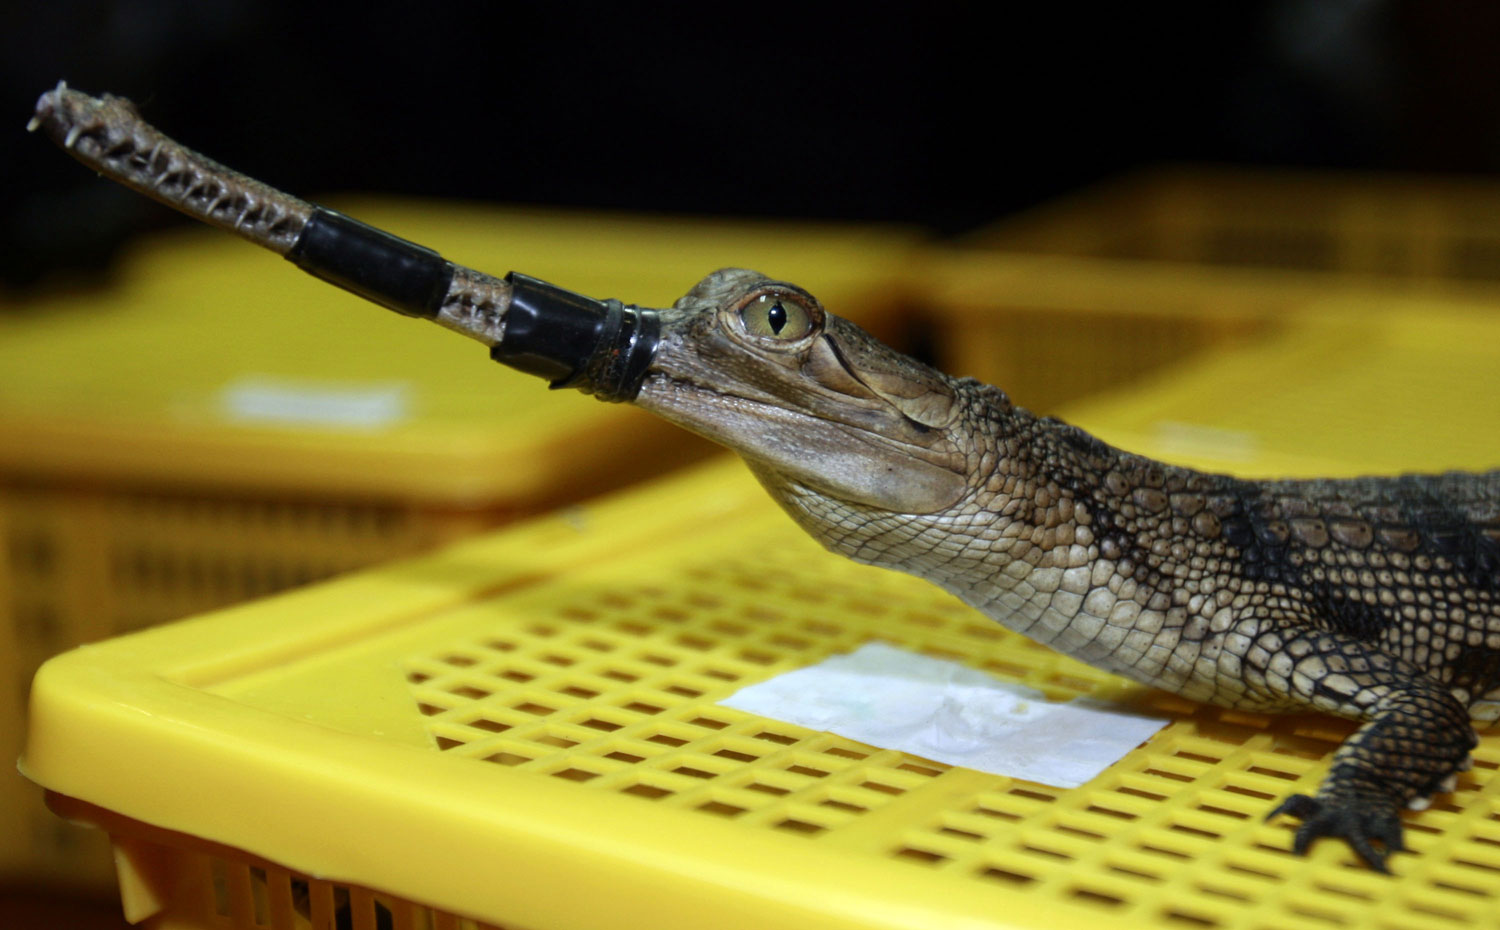 A crocodile native to India is shown to the press during a news conference in Bangkok on June 2, 2011. Thai customs authorities say 431 turtles and other rare reptiles were stuffed into four suitcases and smuggled into the Bangkok airport.